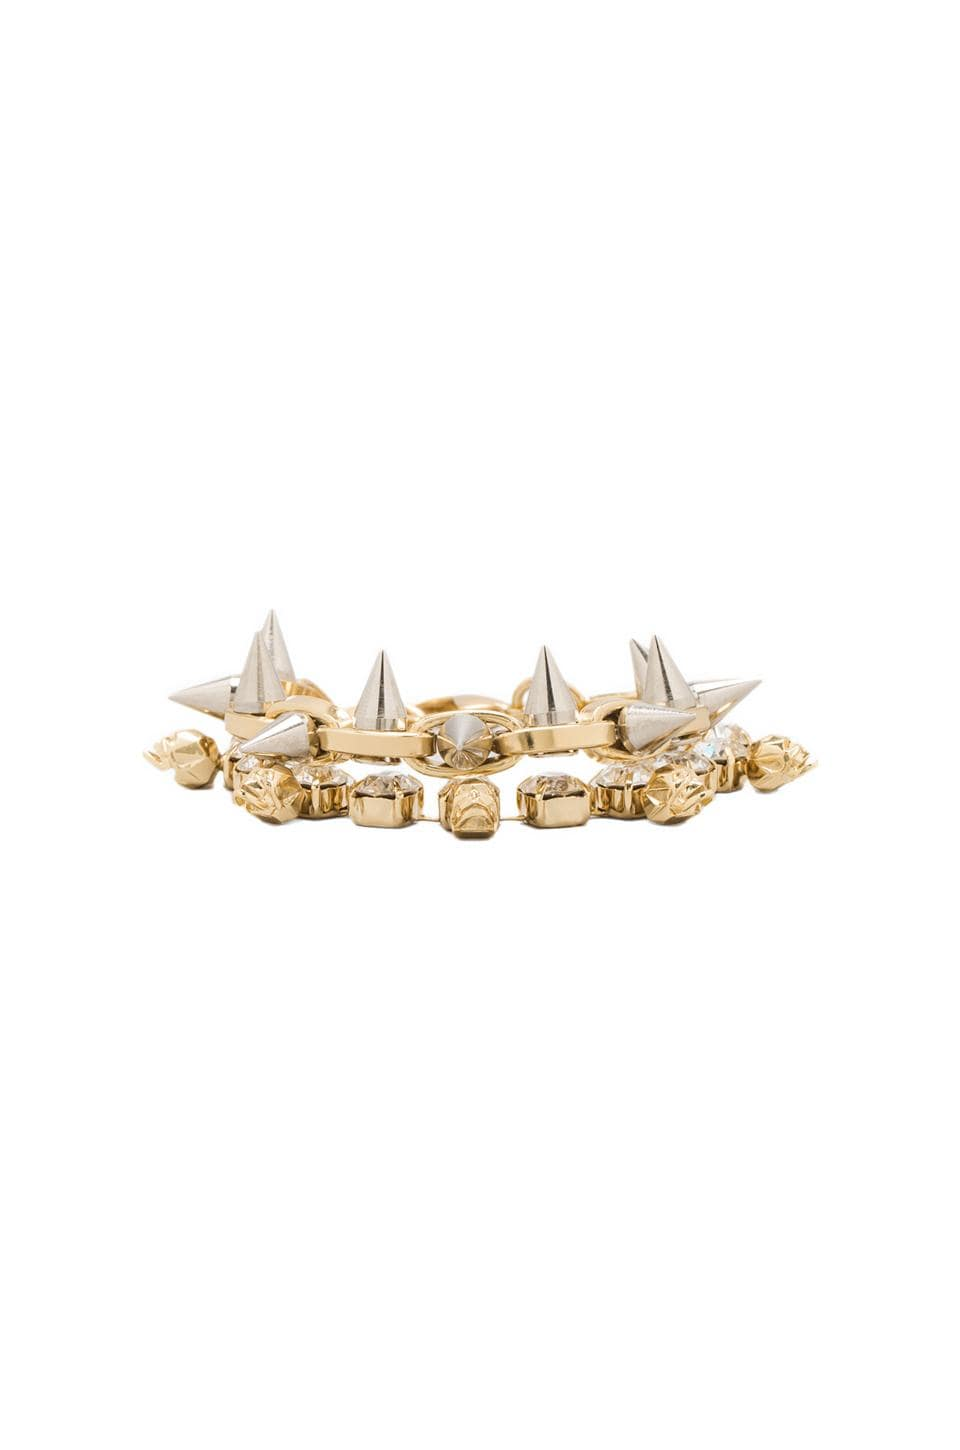 JOOMI LIM Crystal Skull & Spike Bracelet in Crystal/Gold/Silver Spikes